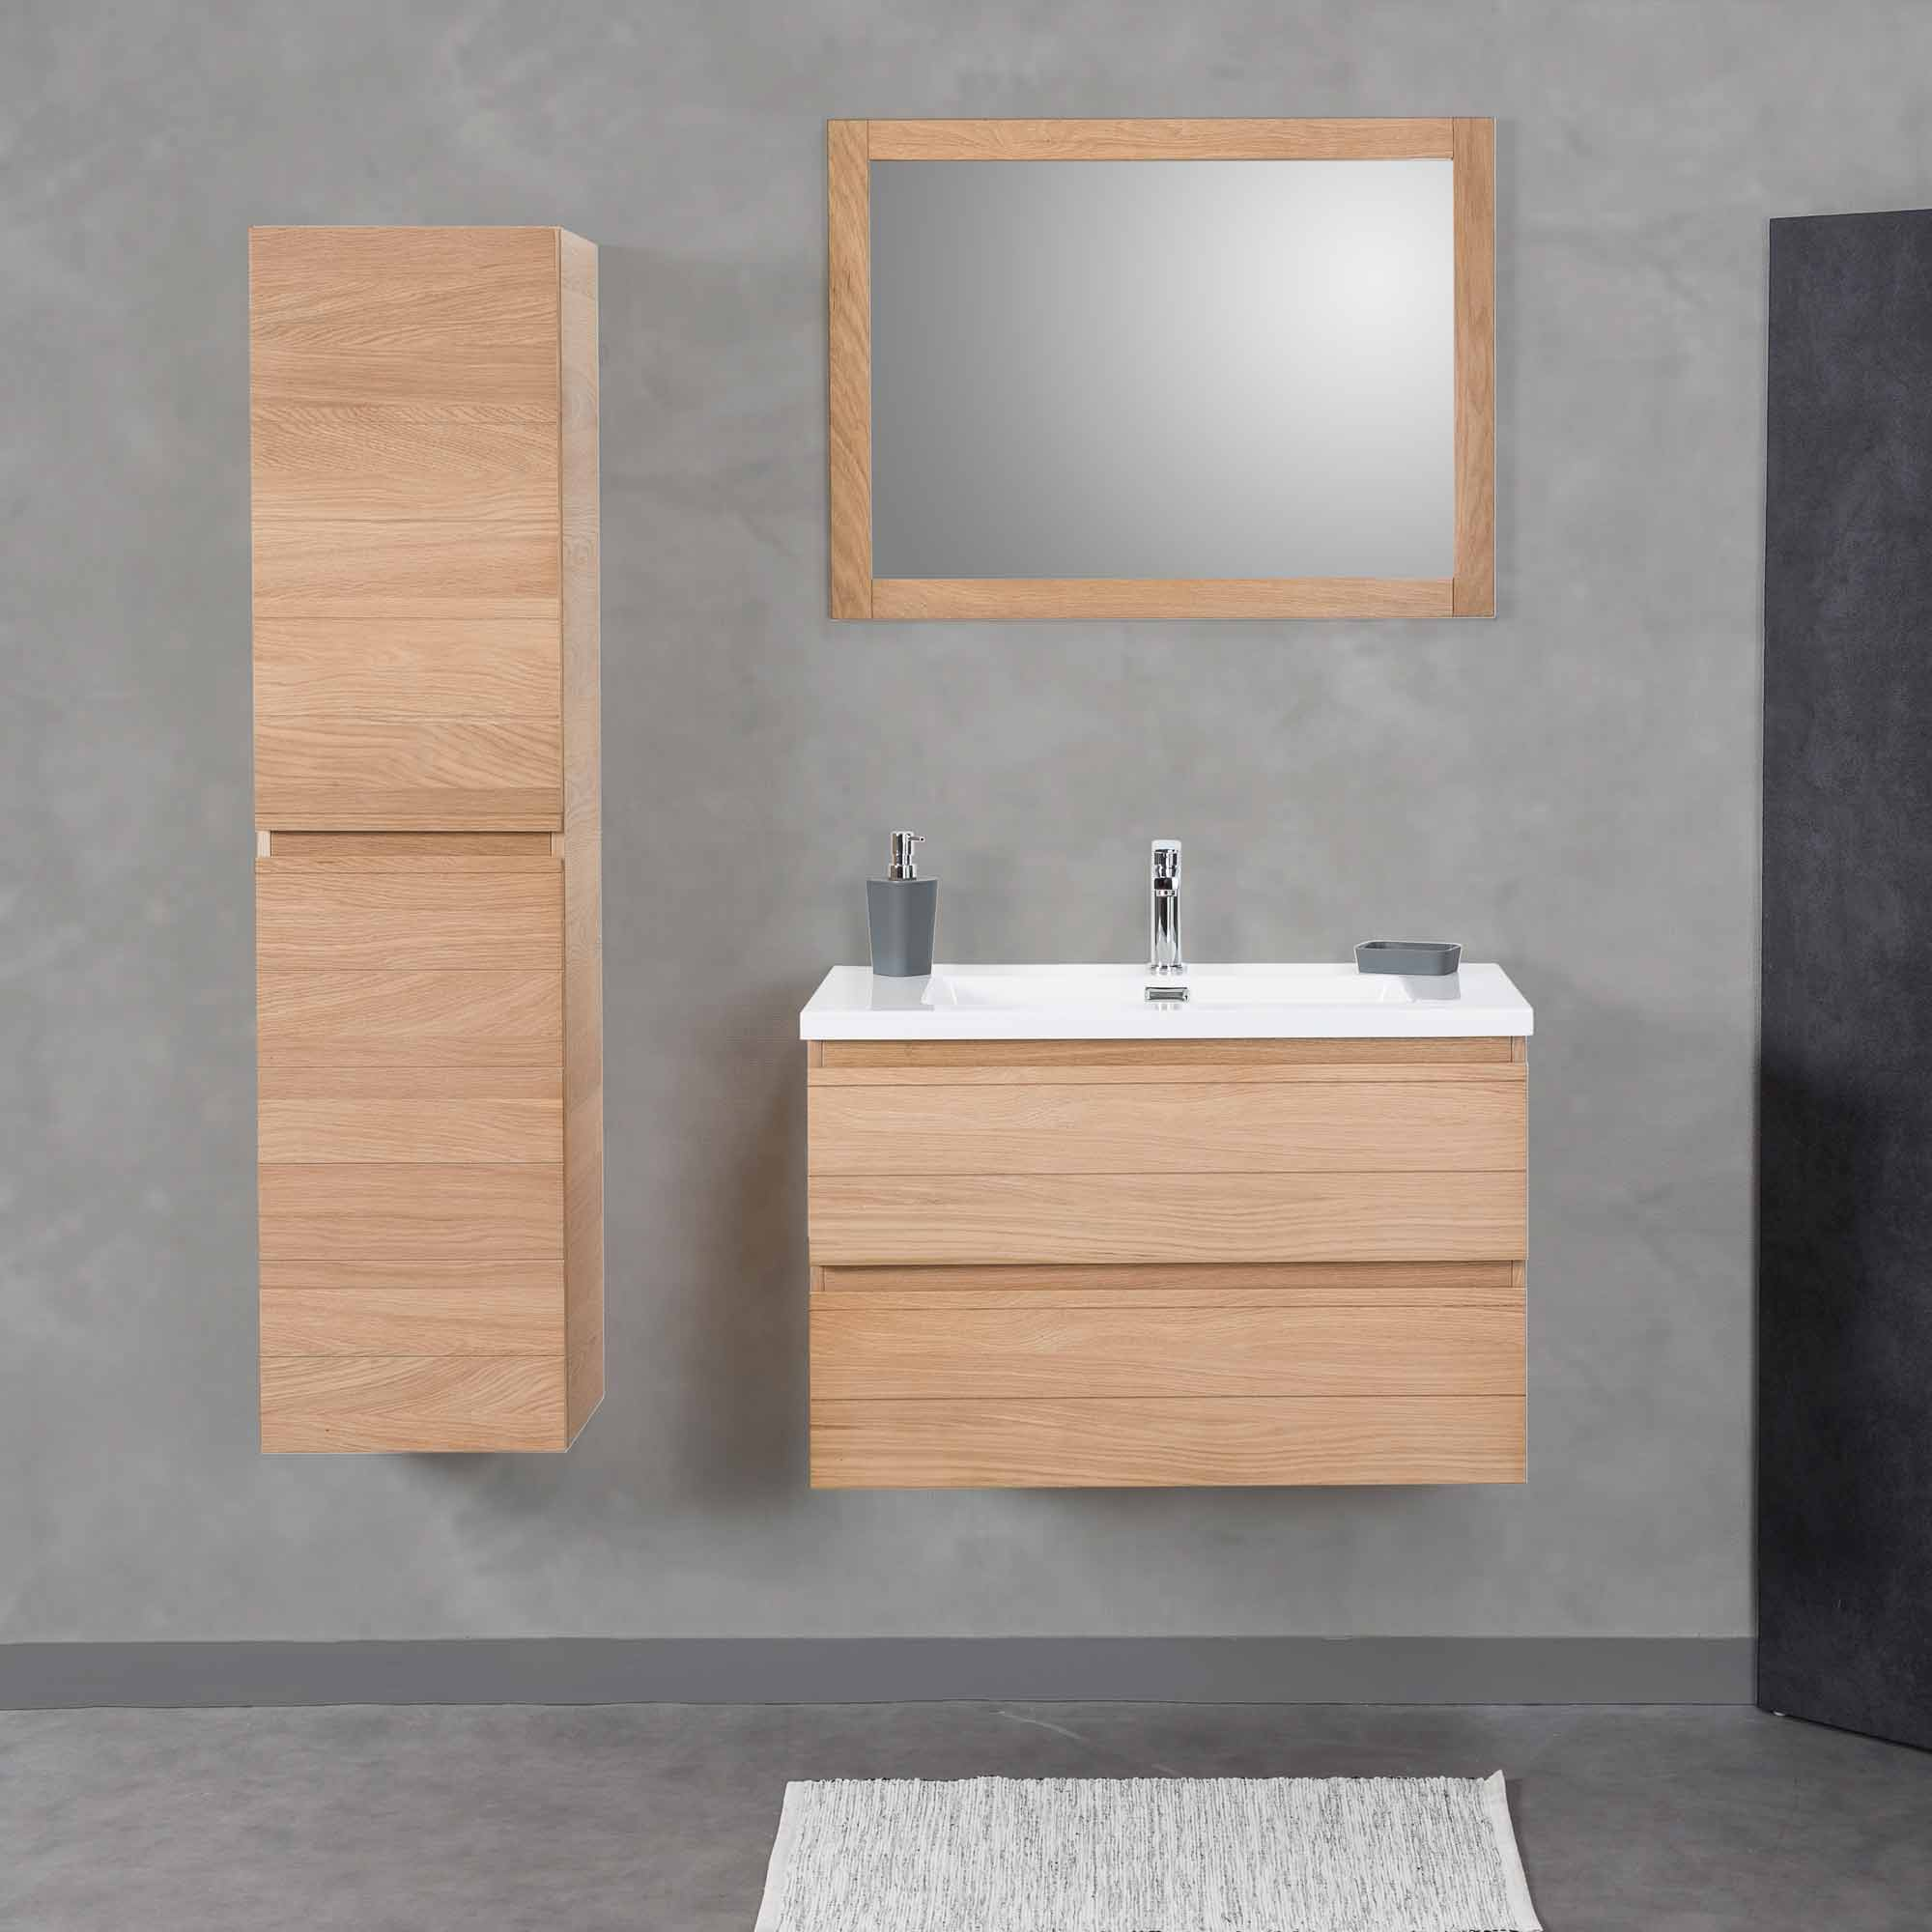 Double Vasque Salle De Bain Brico Depot Luxe Images Article with Tag Ikea Lamp Shades